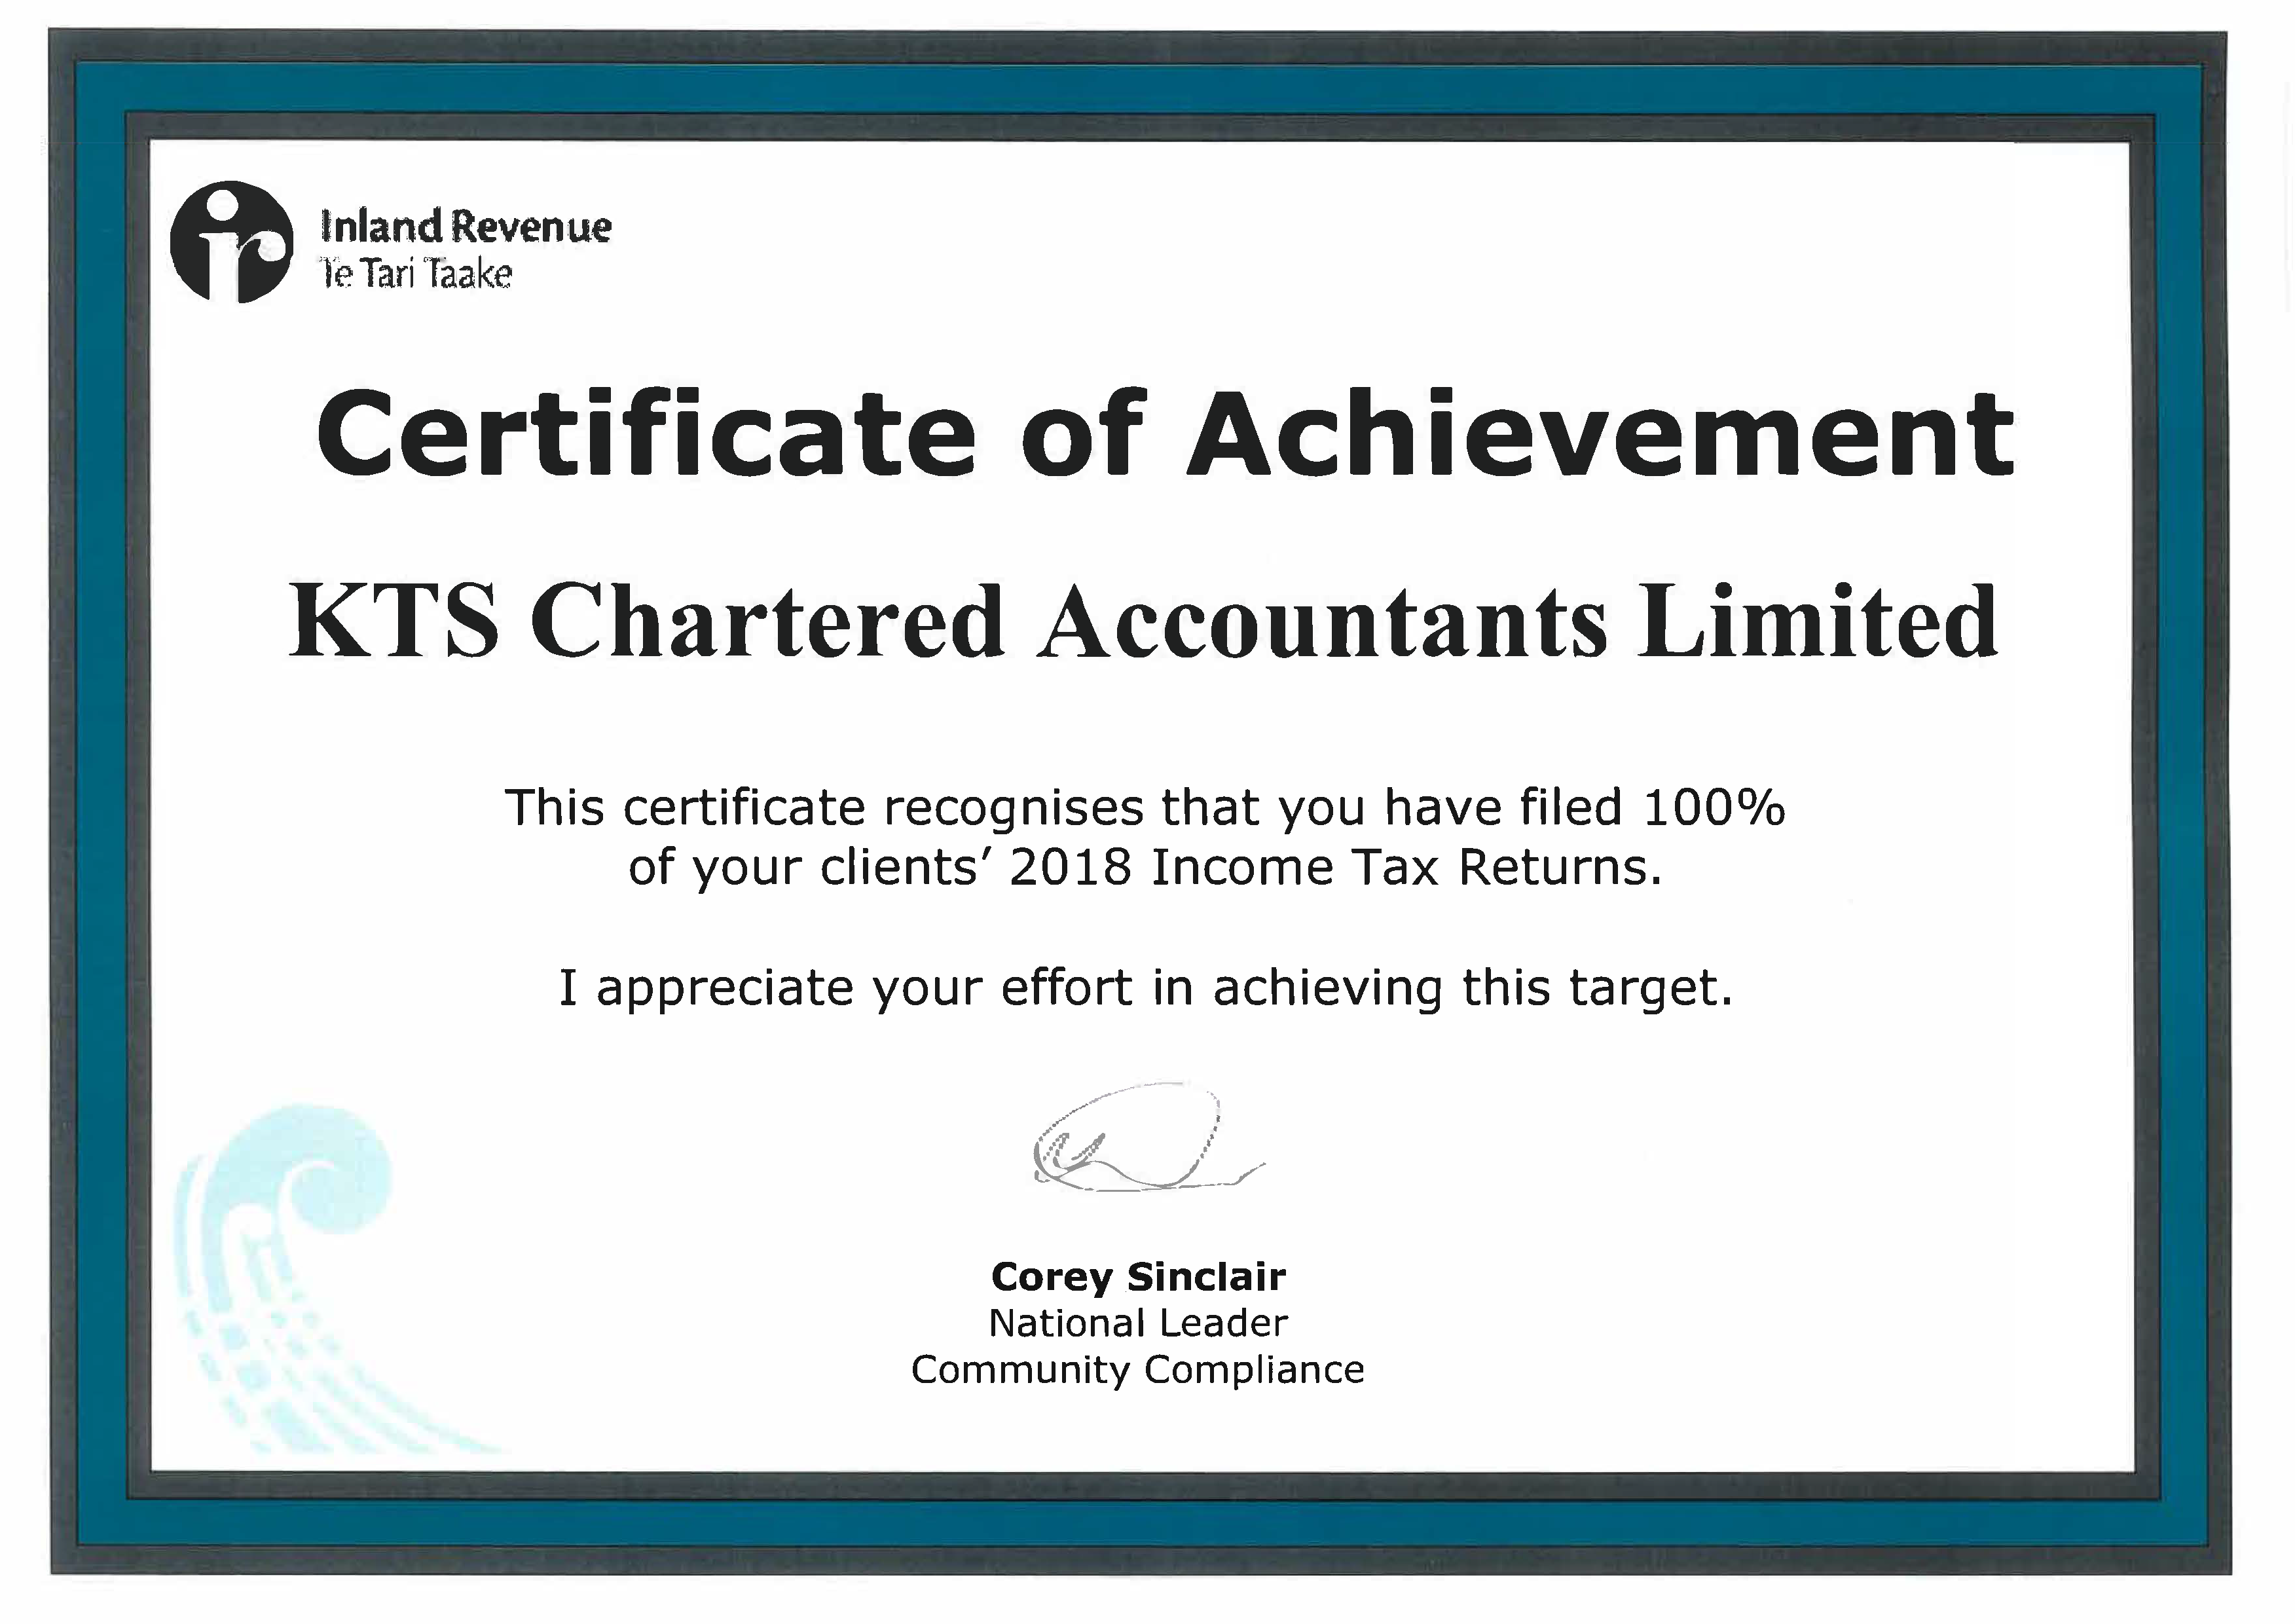 CERTIFICATE OF ACHIEVEMENT FROM IRD - KTS Chartered Accountants